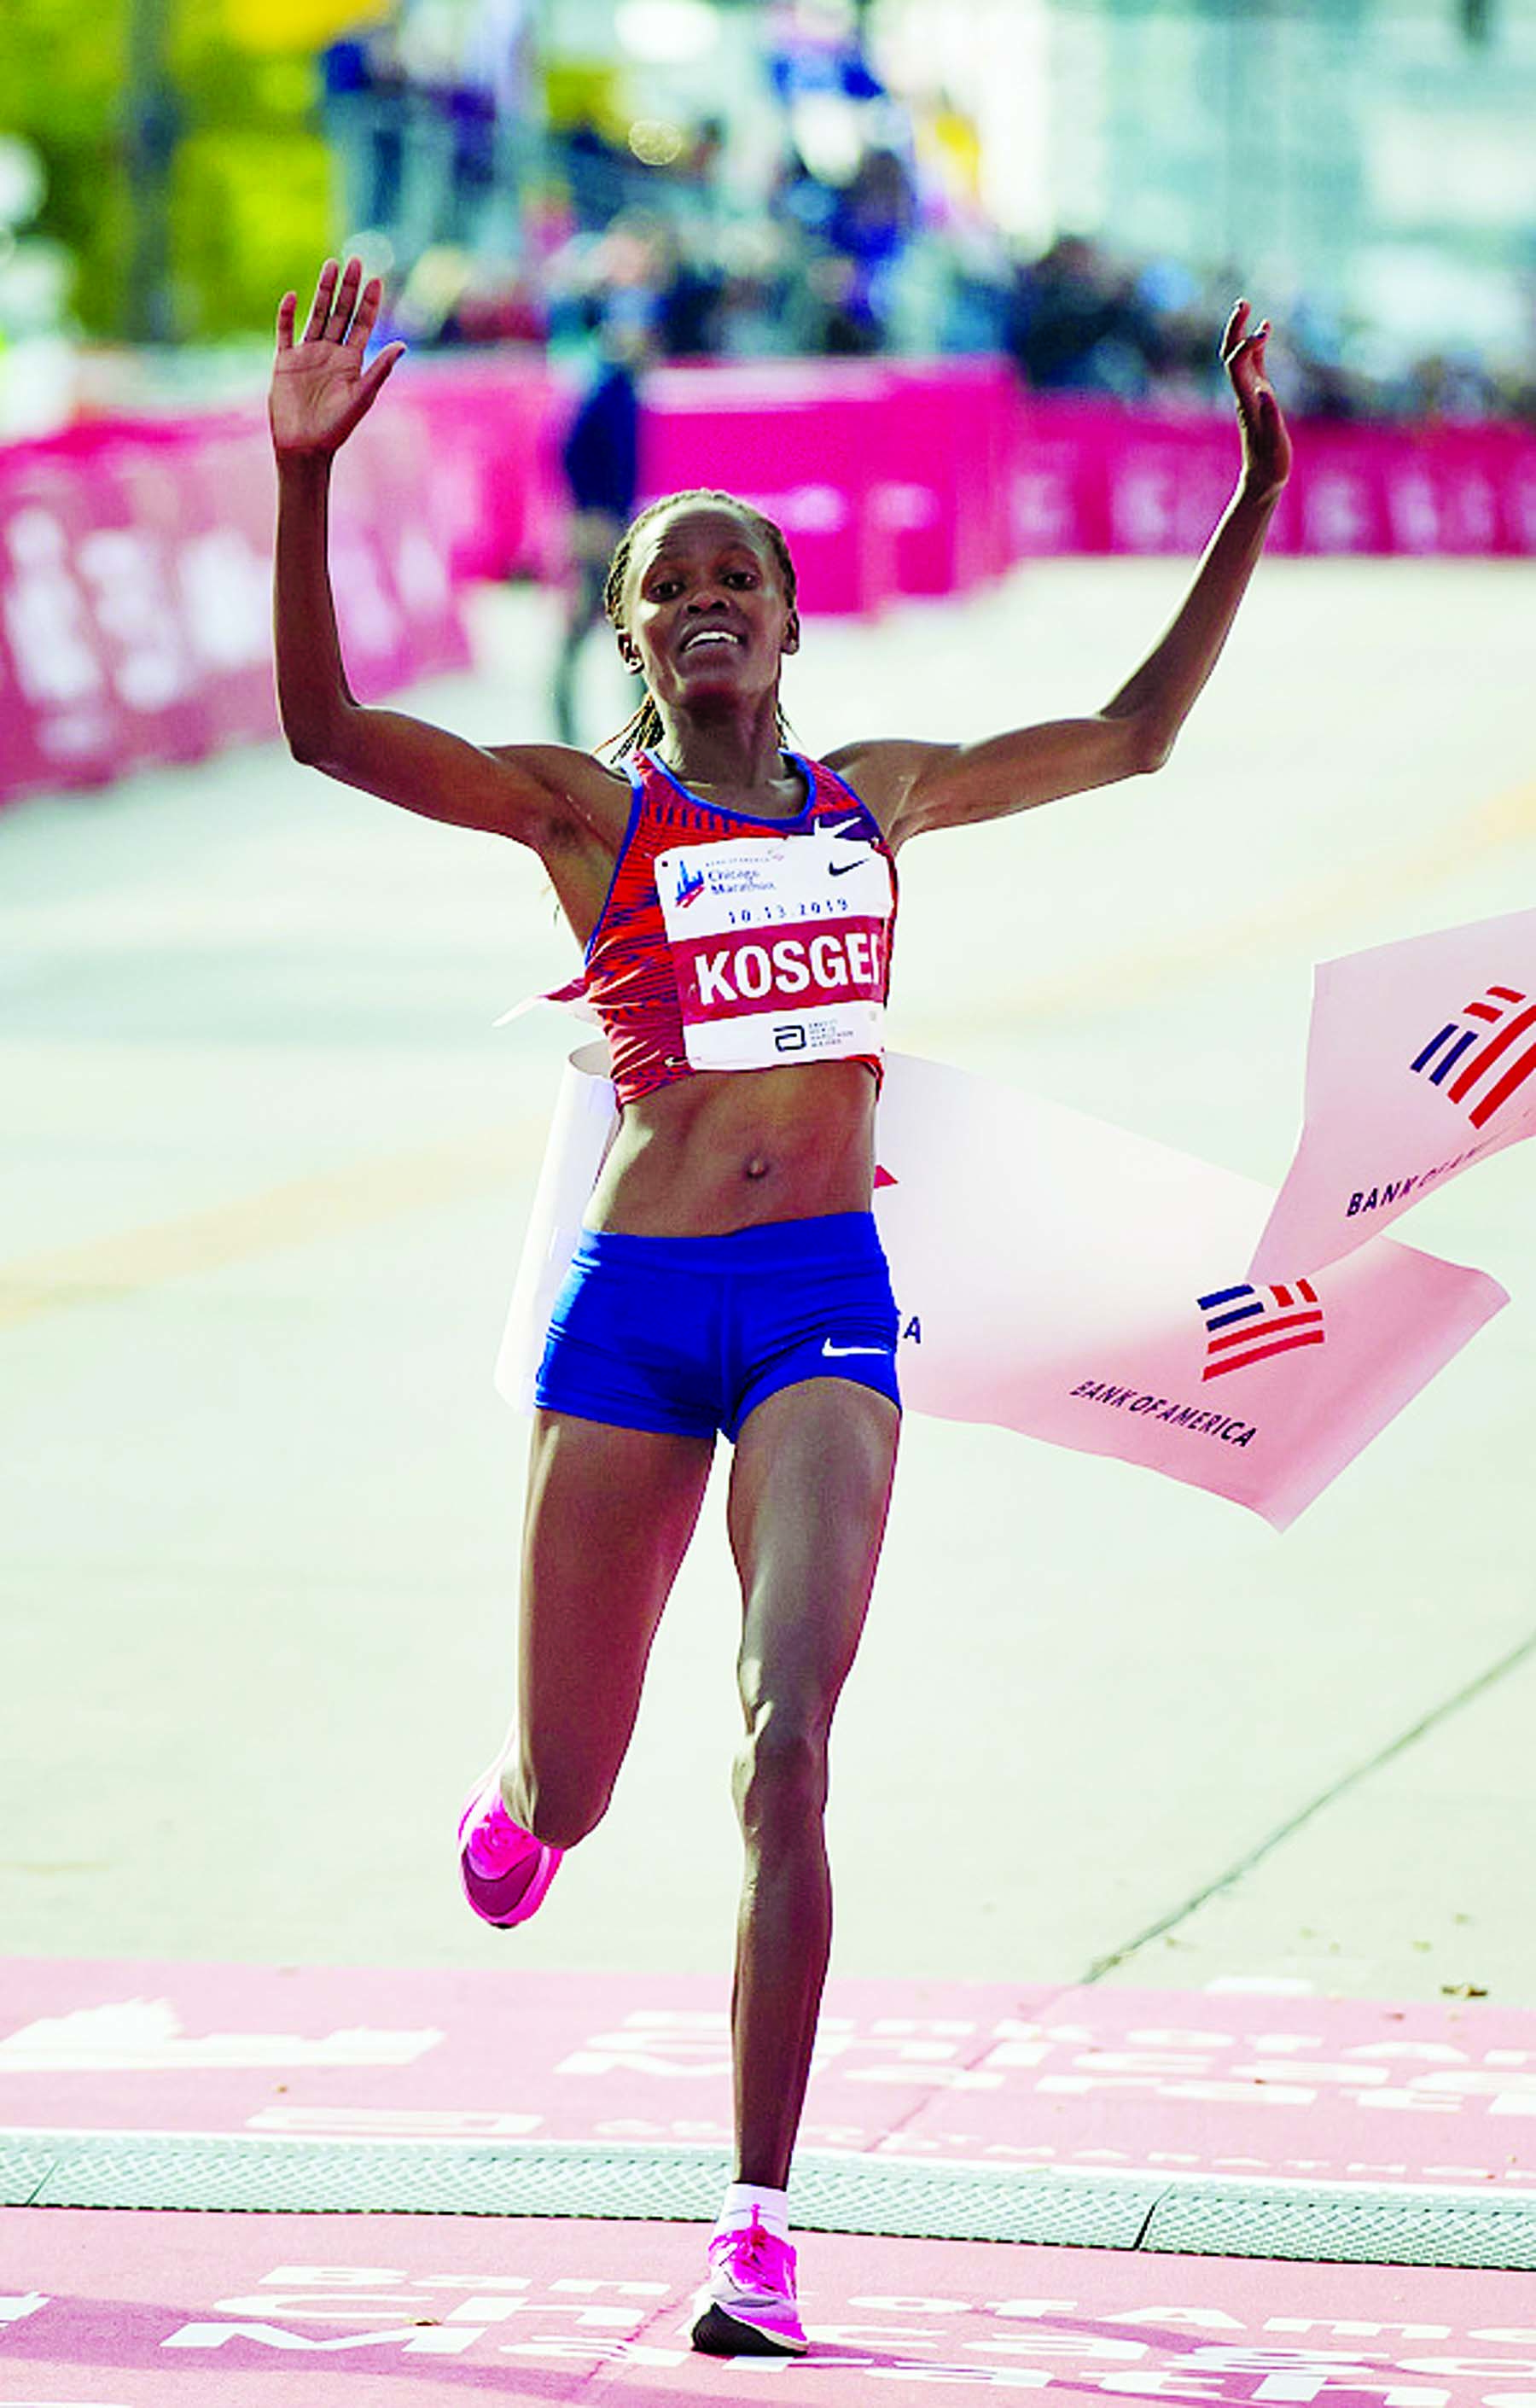 Brigid Kosgei wins the Women's Marathon in World record time  in the Chicago Marathon on Sunday.